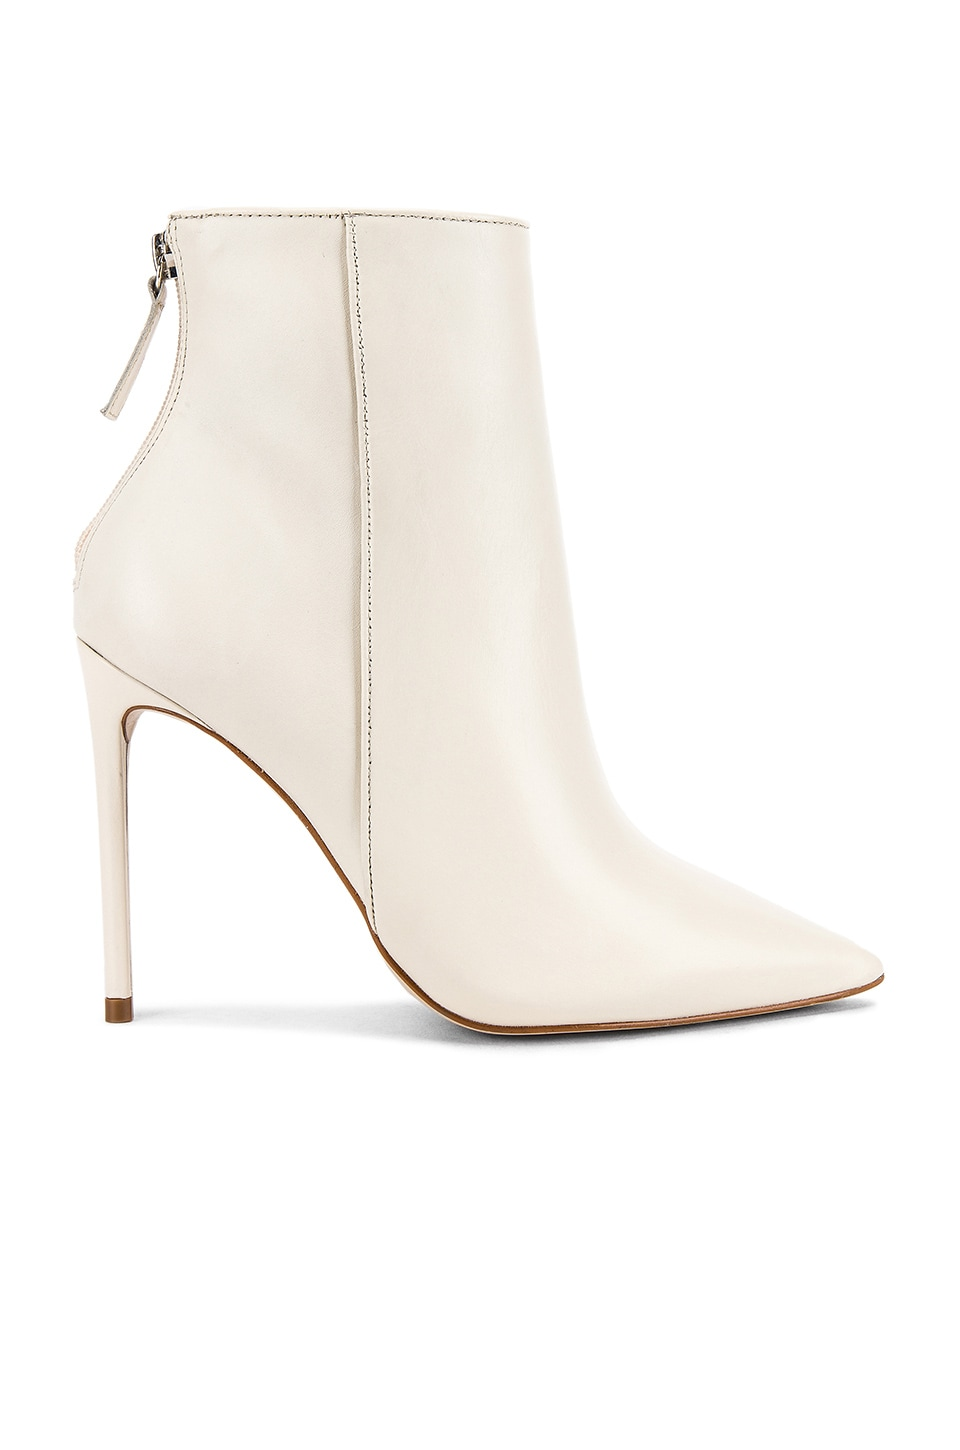 Steve Madden Via Stiletto Bootie in Off White